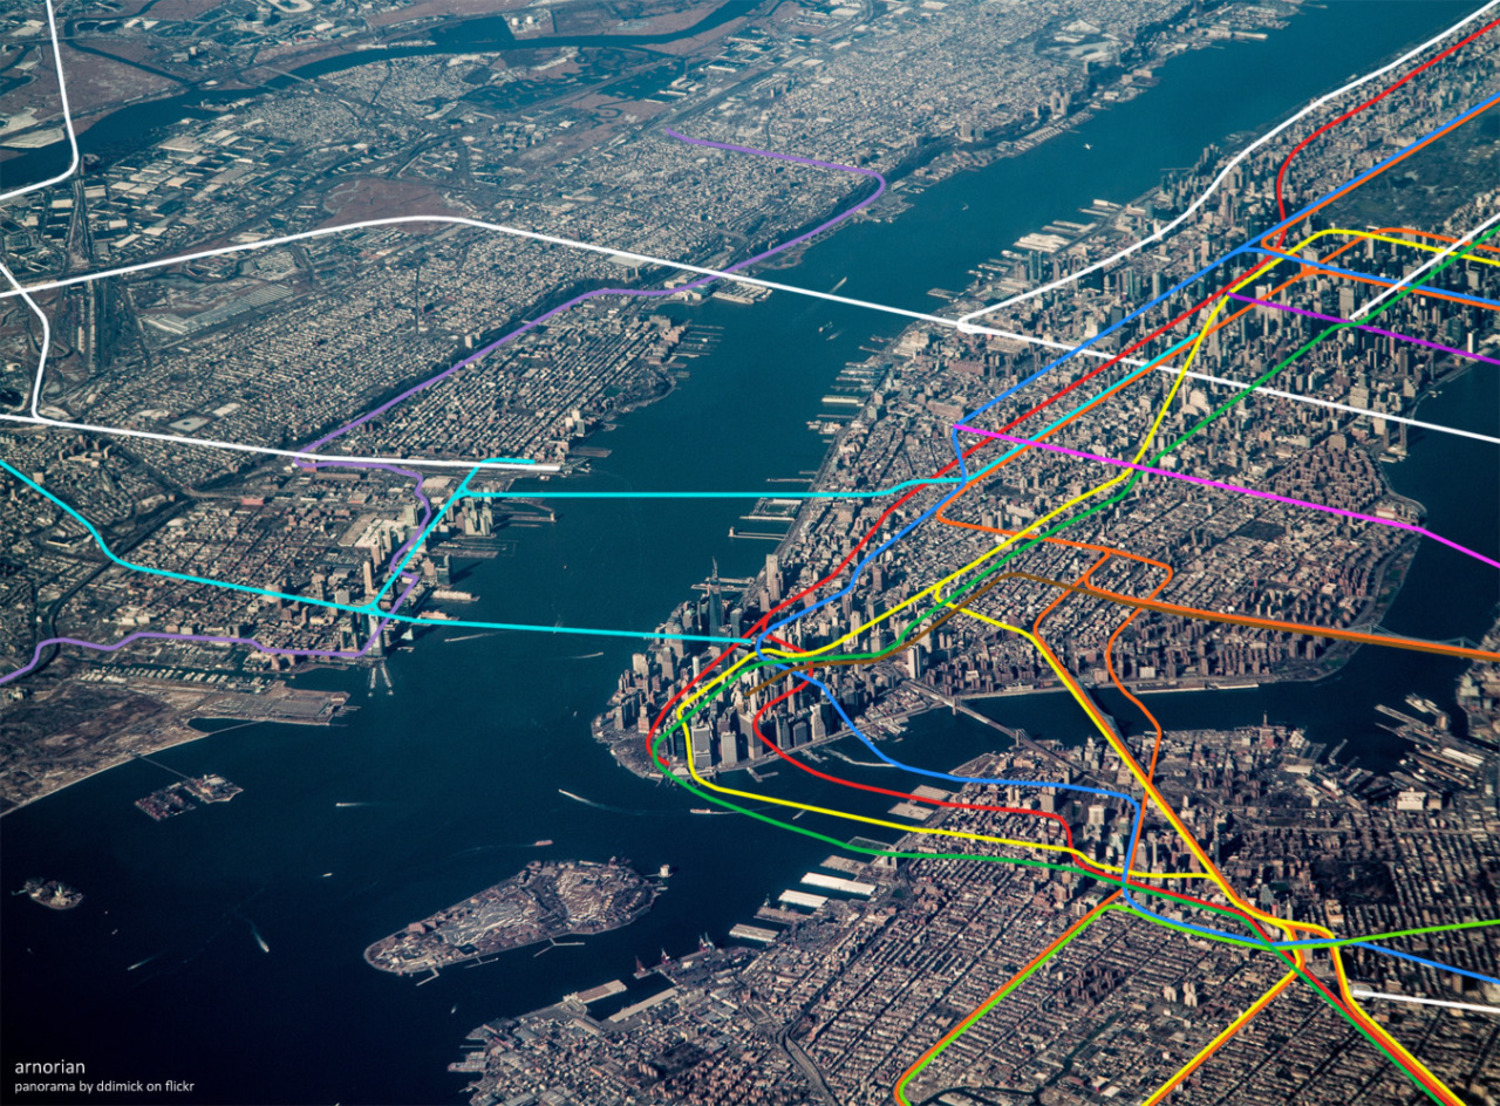 Sky view of New York City and its rapid transit network.